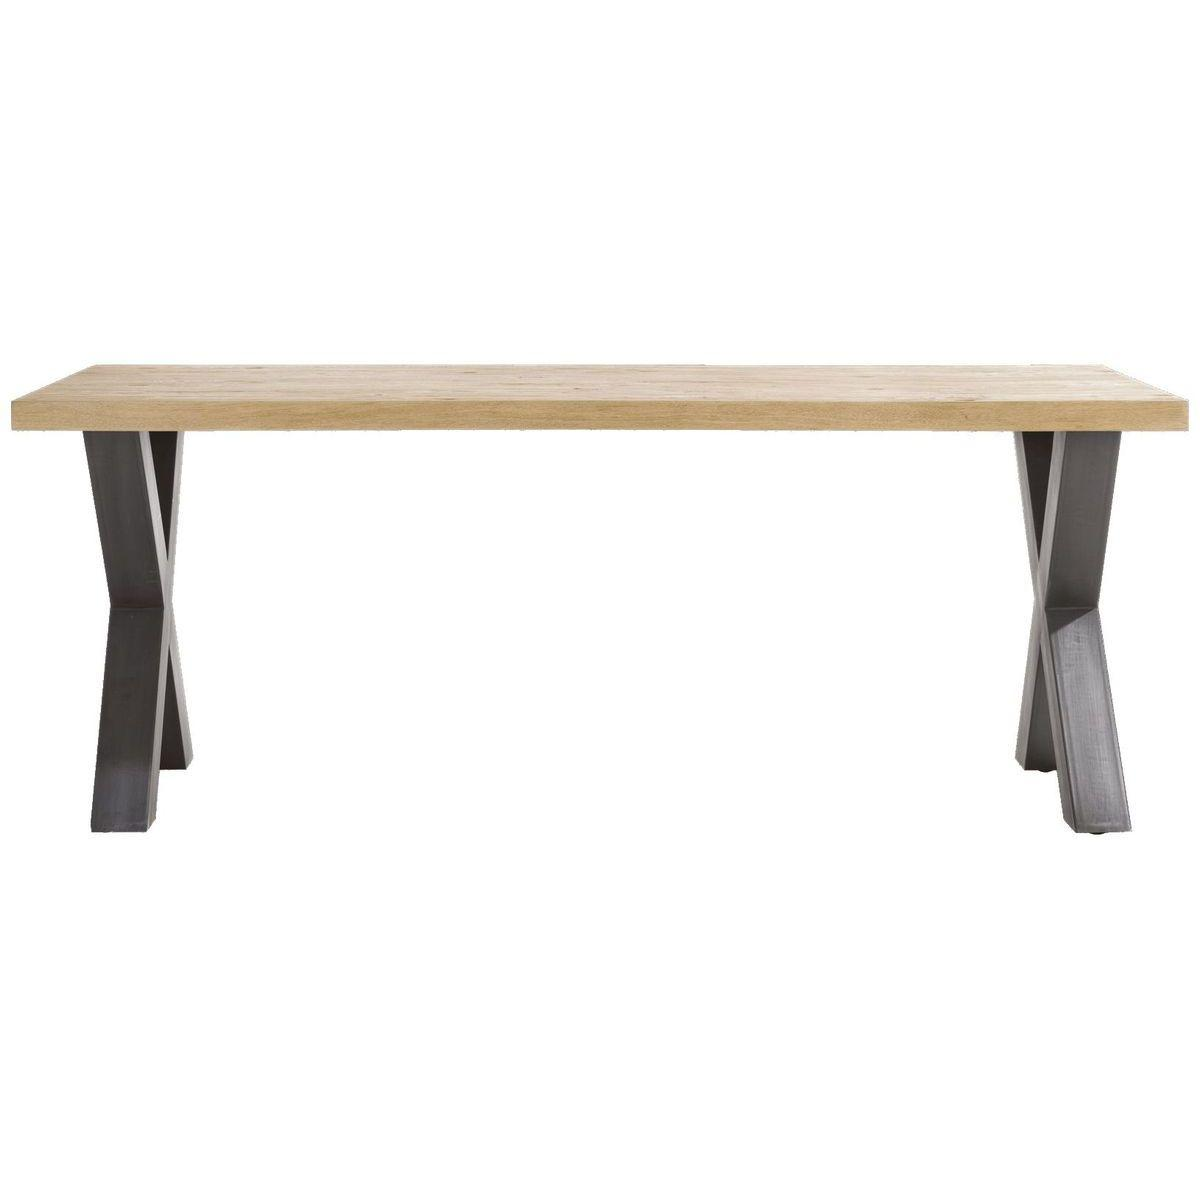 Table METALOX HetH 200x100cm